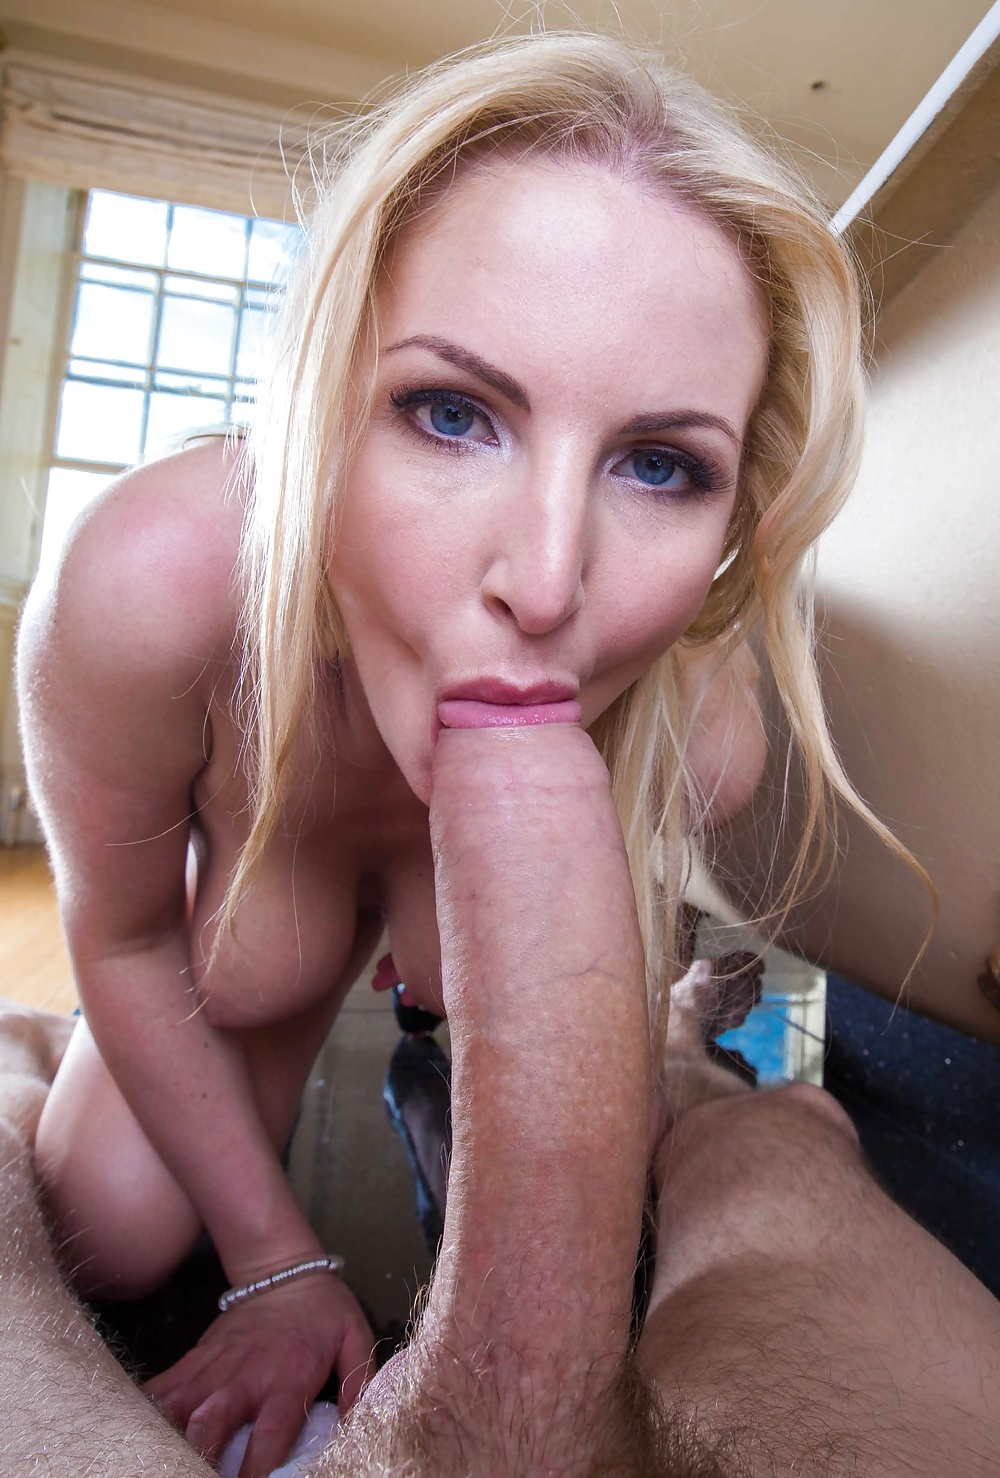 Milf Sucking Dick 68